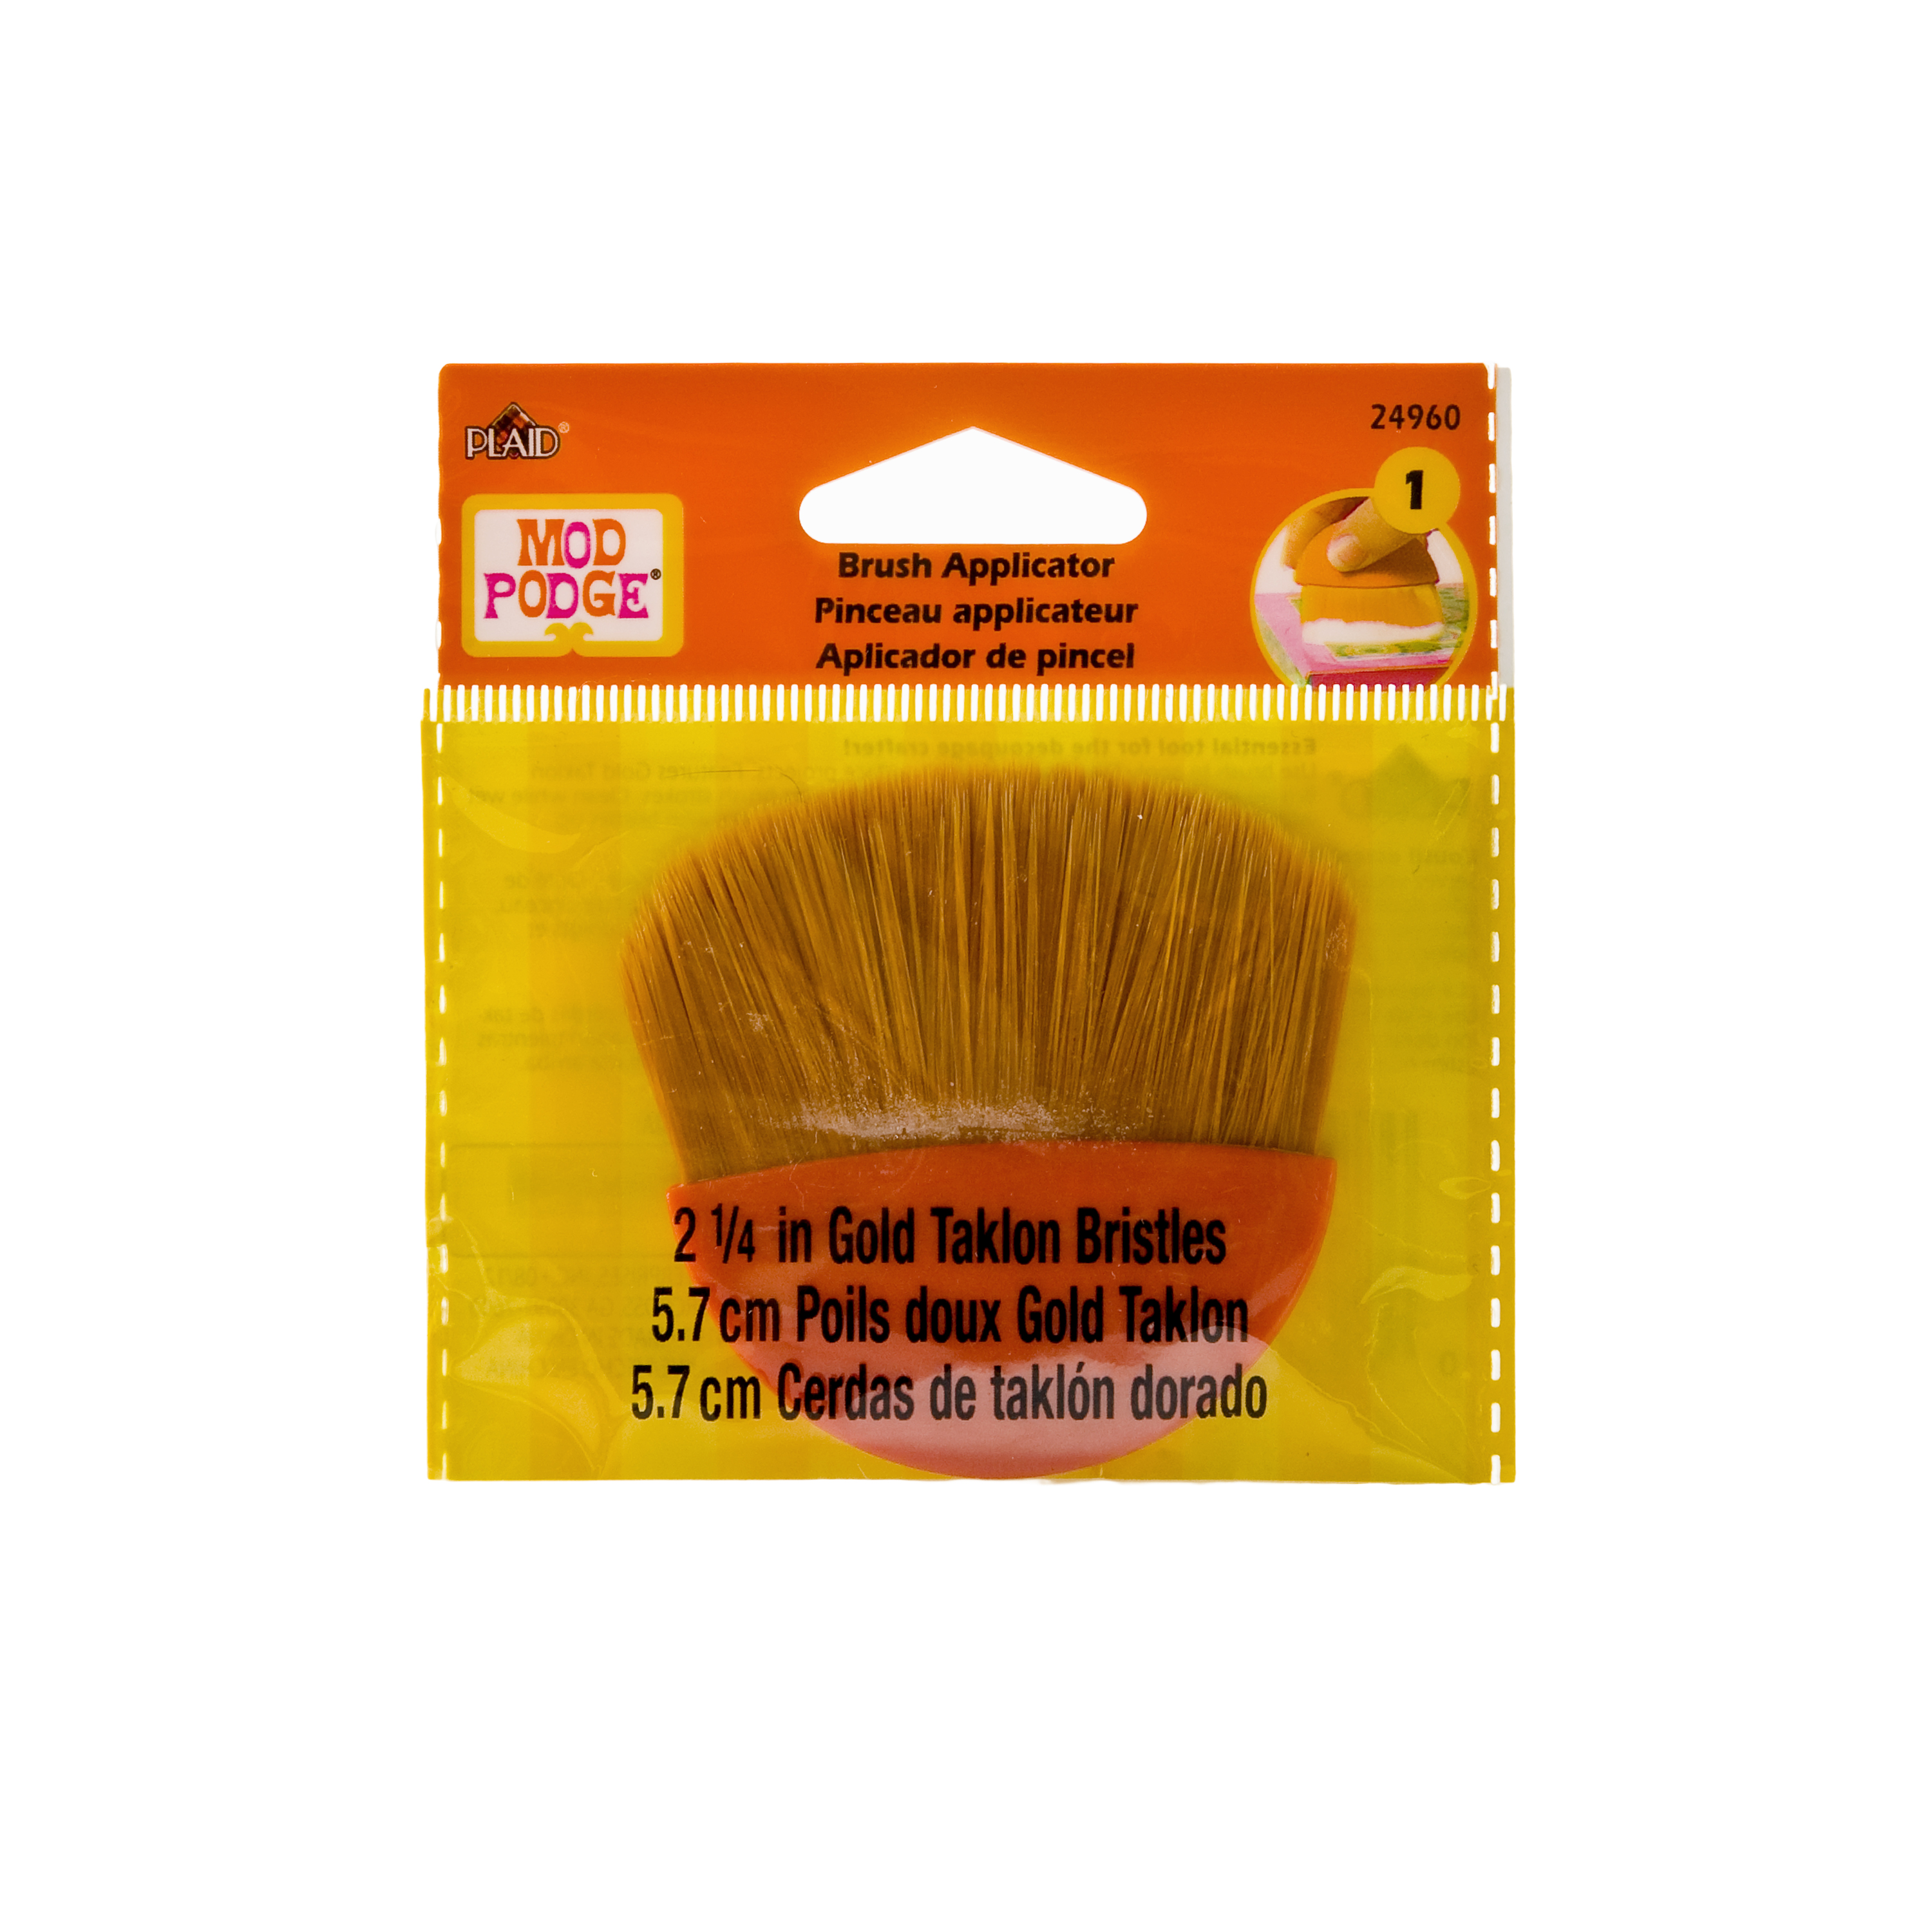 "Mod Podge 2¼"" Gold Taklon Brush Applicator for Decoupage by Plaid"